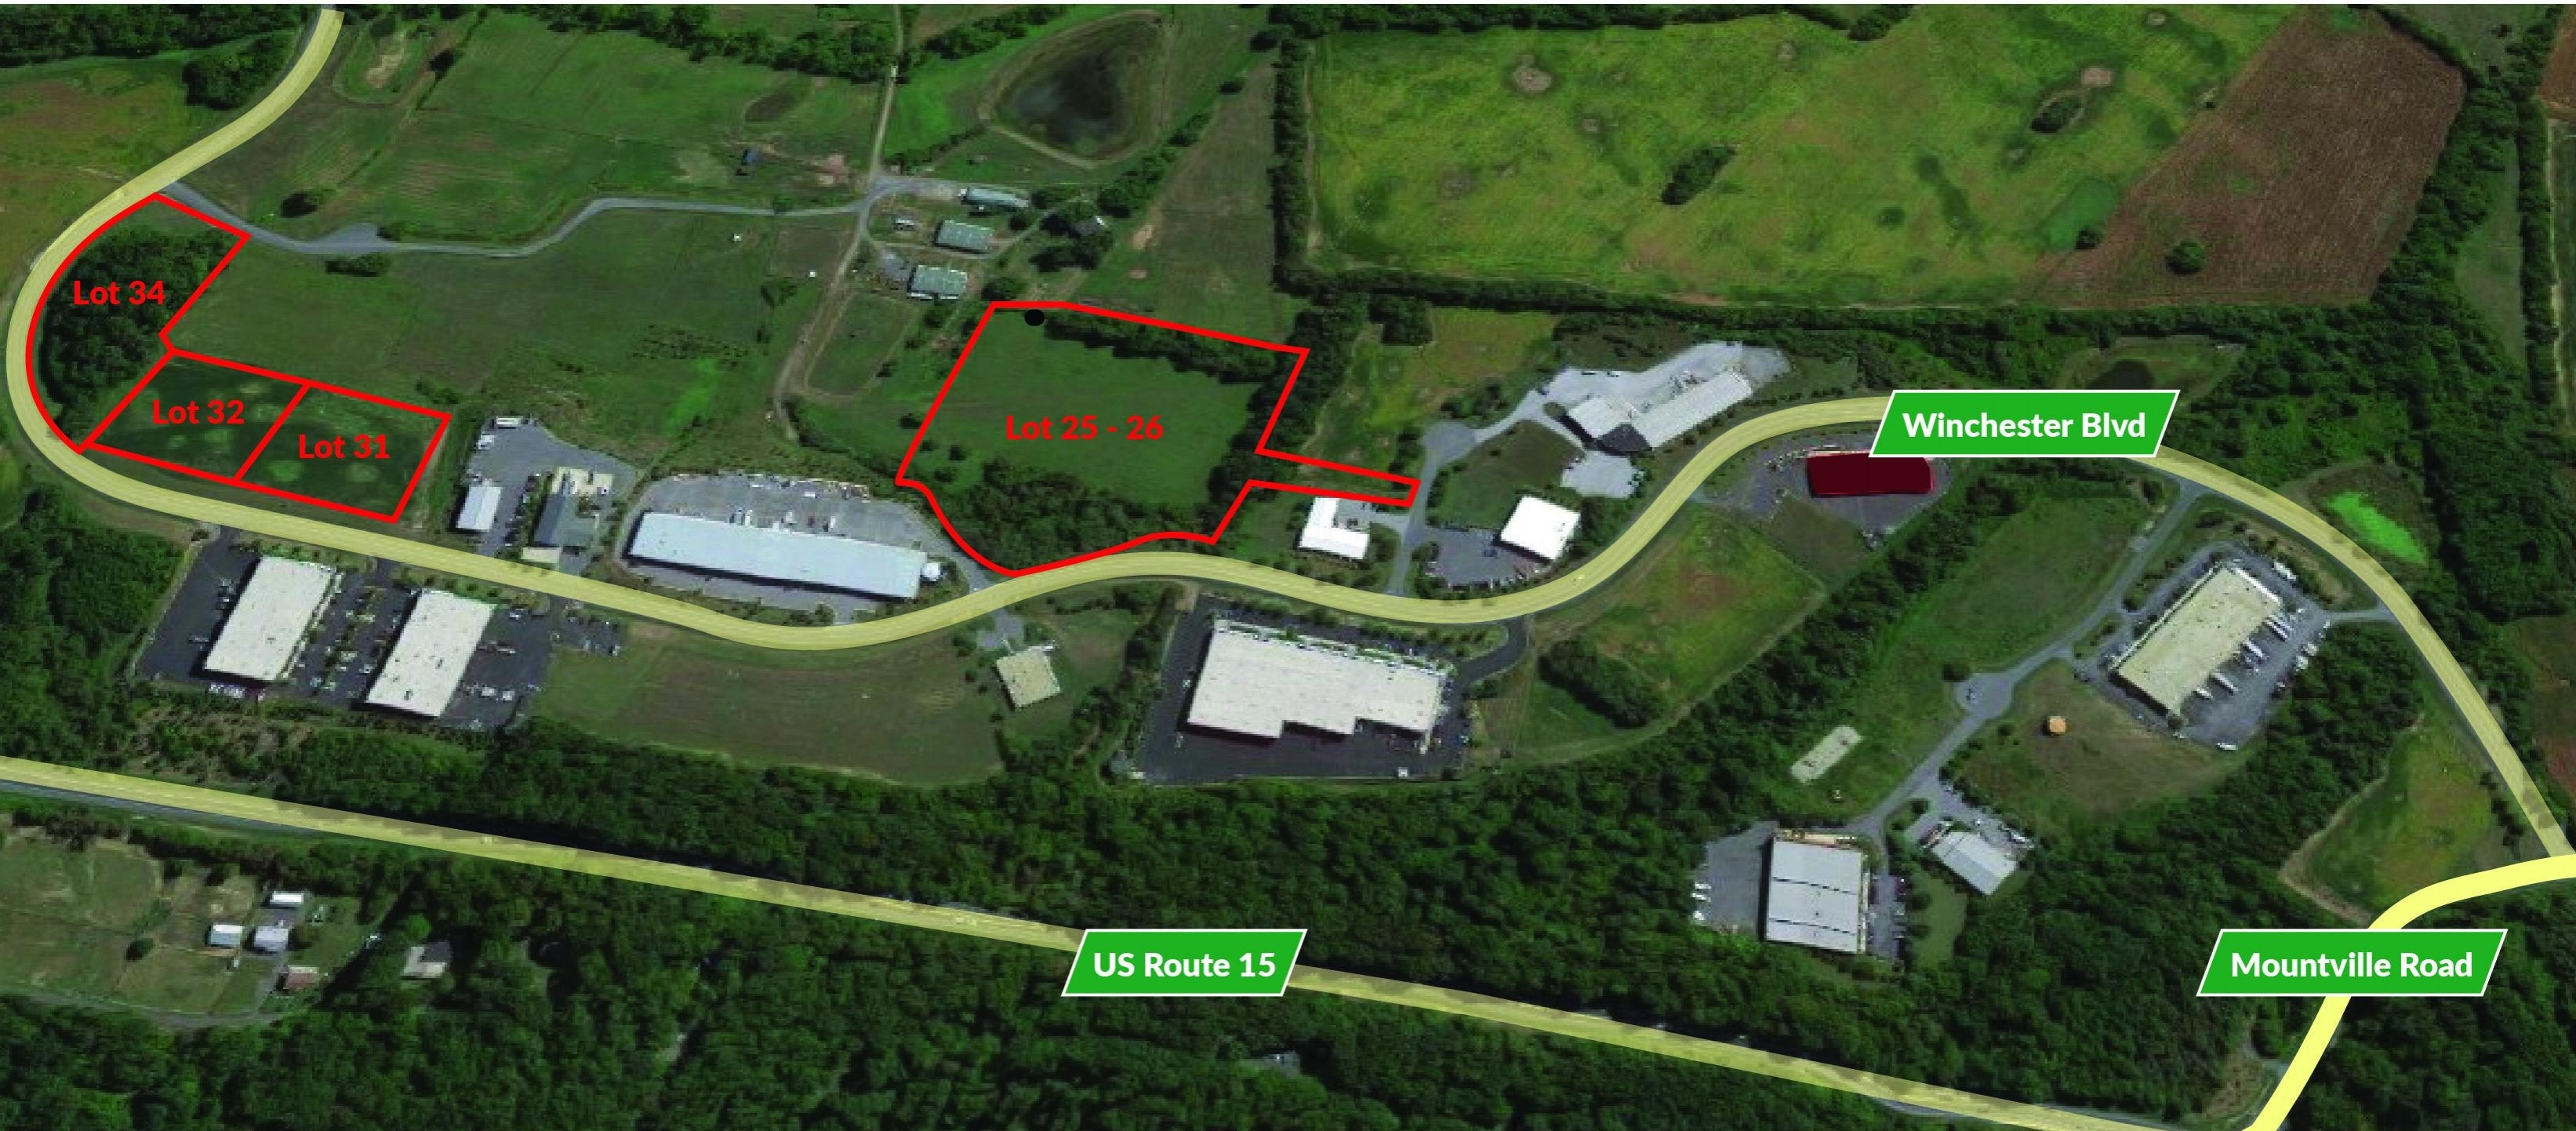 Stanford Industrial Park - Lot 25 & 26 - 11.4± AC